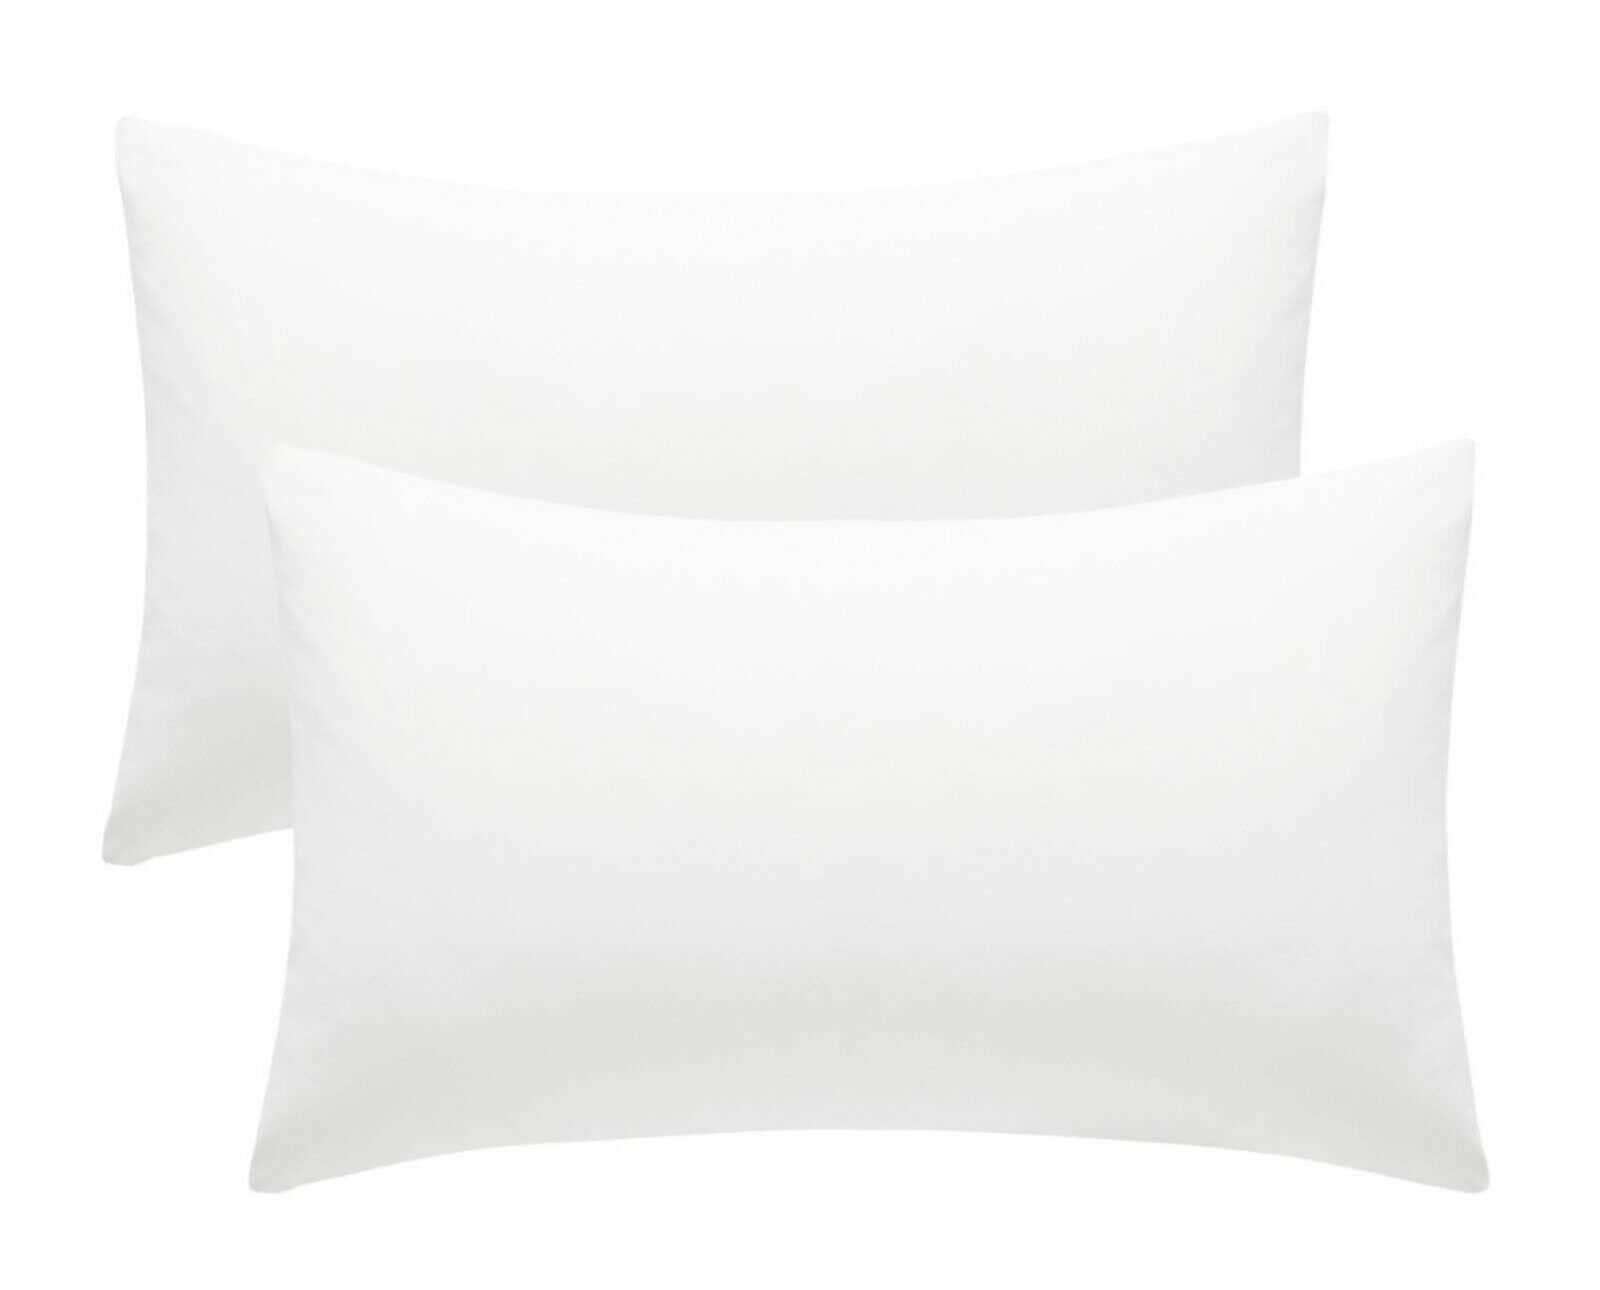 White Plain Pillow Cases Cotton Pair Housewife Case Cover 100% Luxury Pack Covers